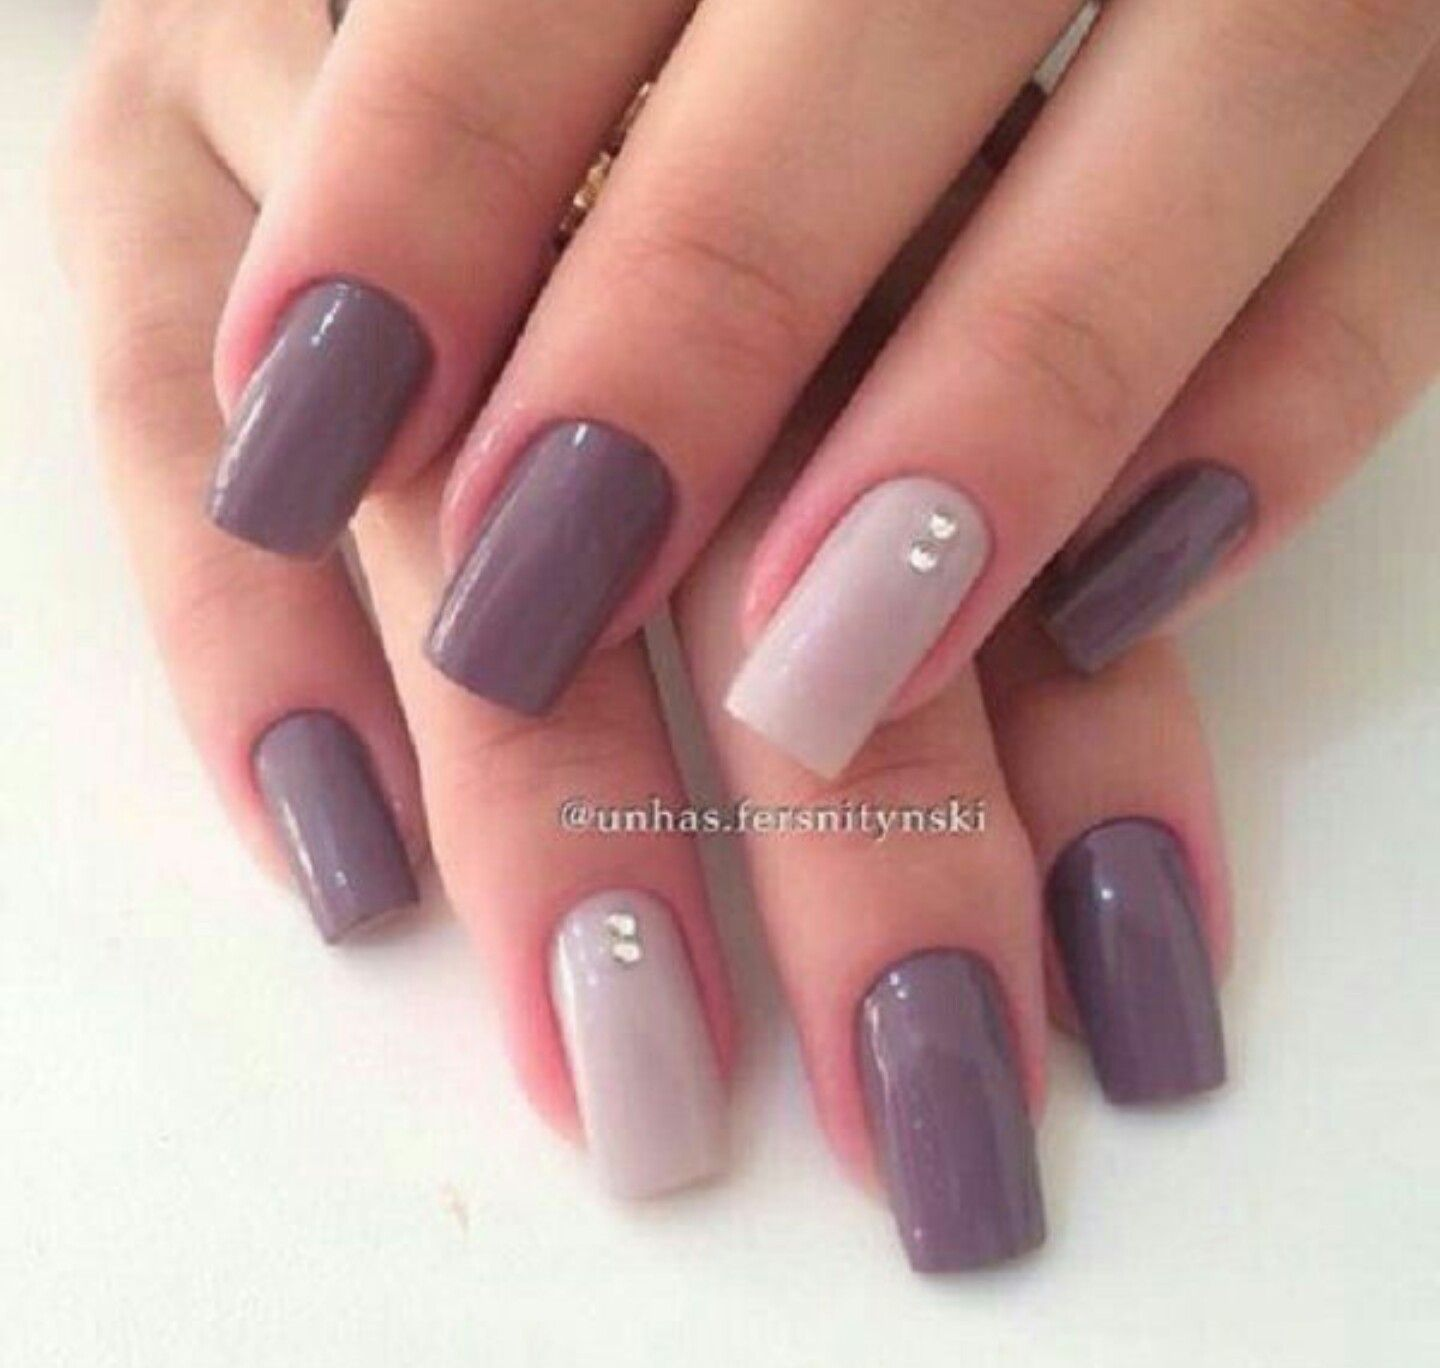 Pin by Nicole C on Beauty | Pinterest | Manicure, Makeup and Nails ...